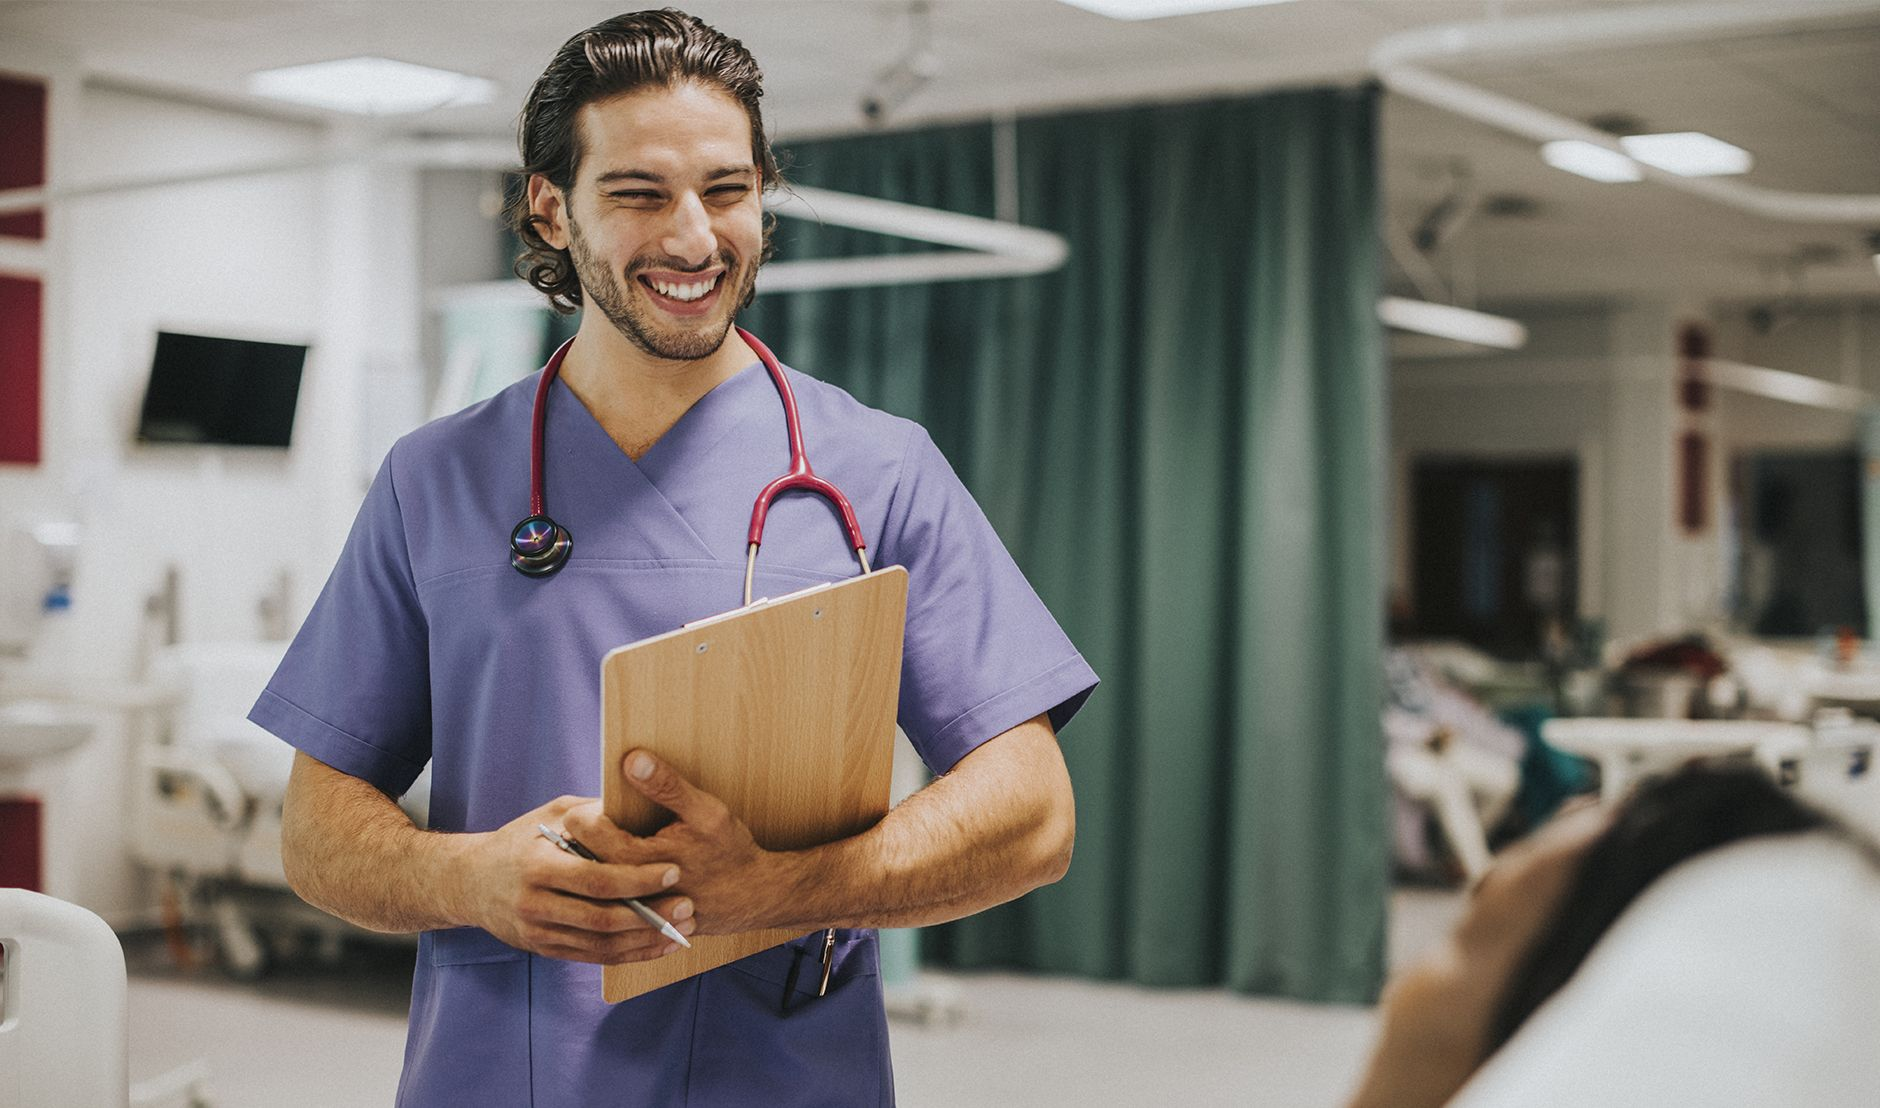 male doctor laughing - working in aunz